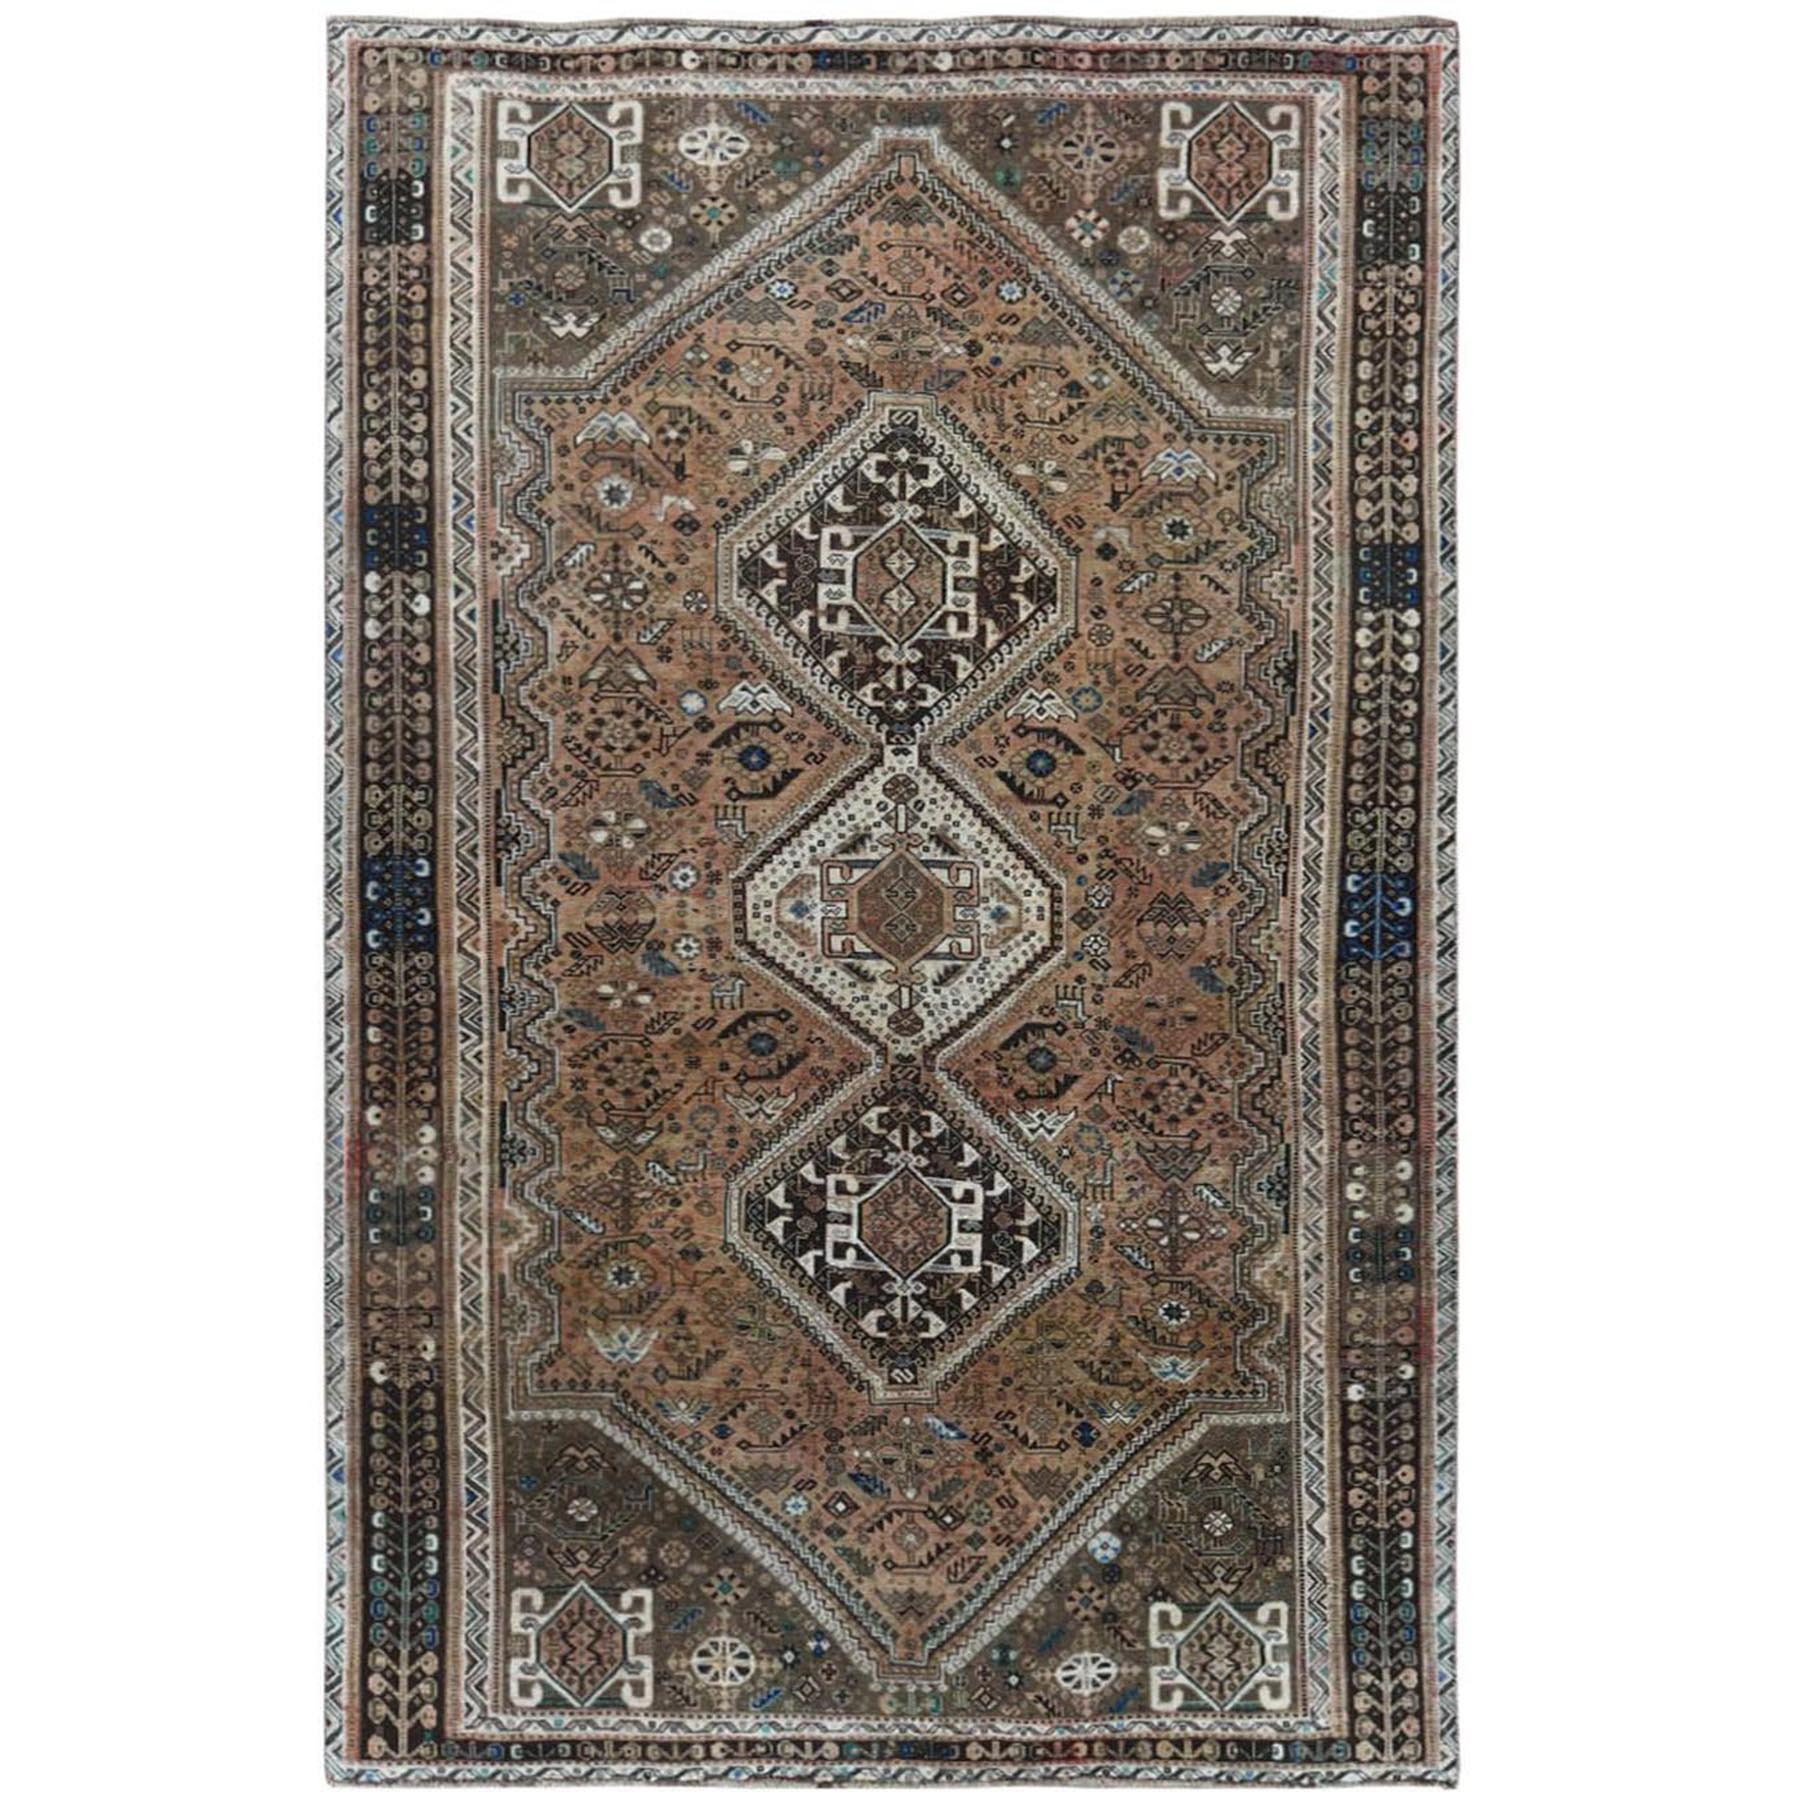 "5'8""x9' Natural Colors Vintage Sheared Low Hand Knotted Persian Bohemian Oriental Rug"